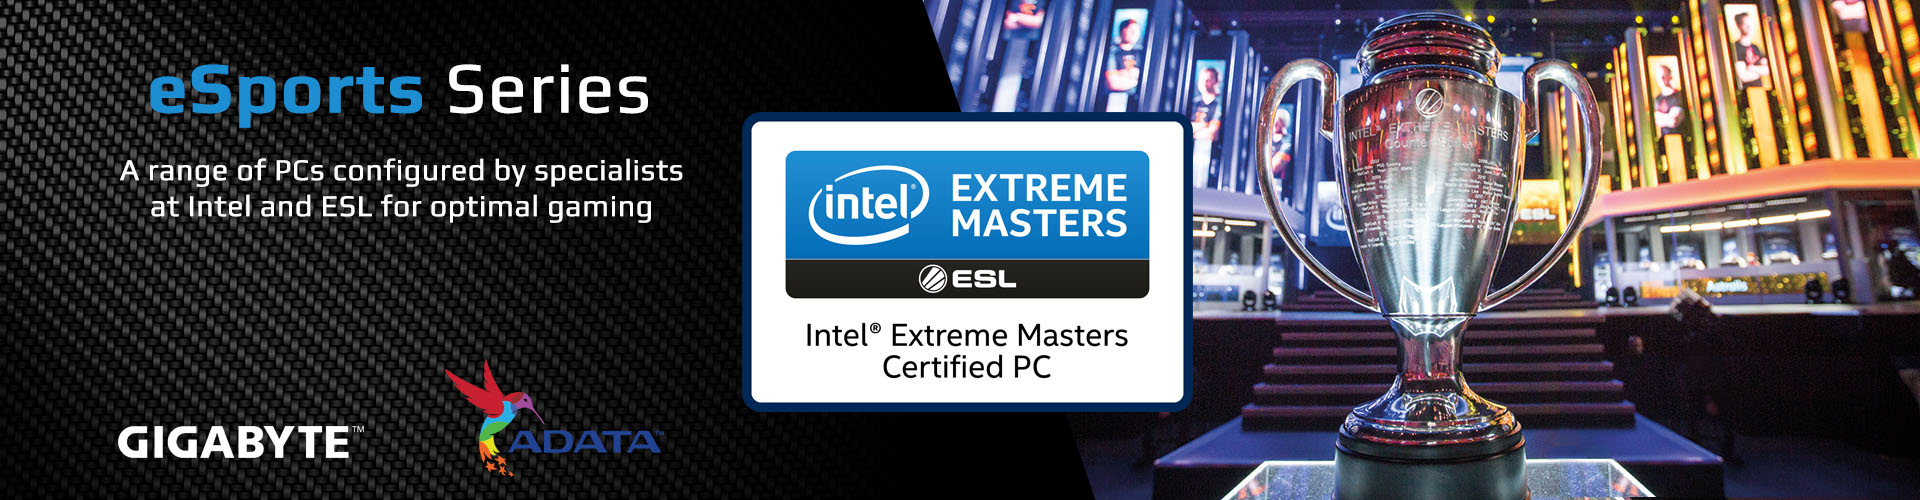 ESL eSports Gaming PCs